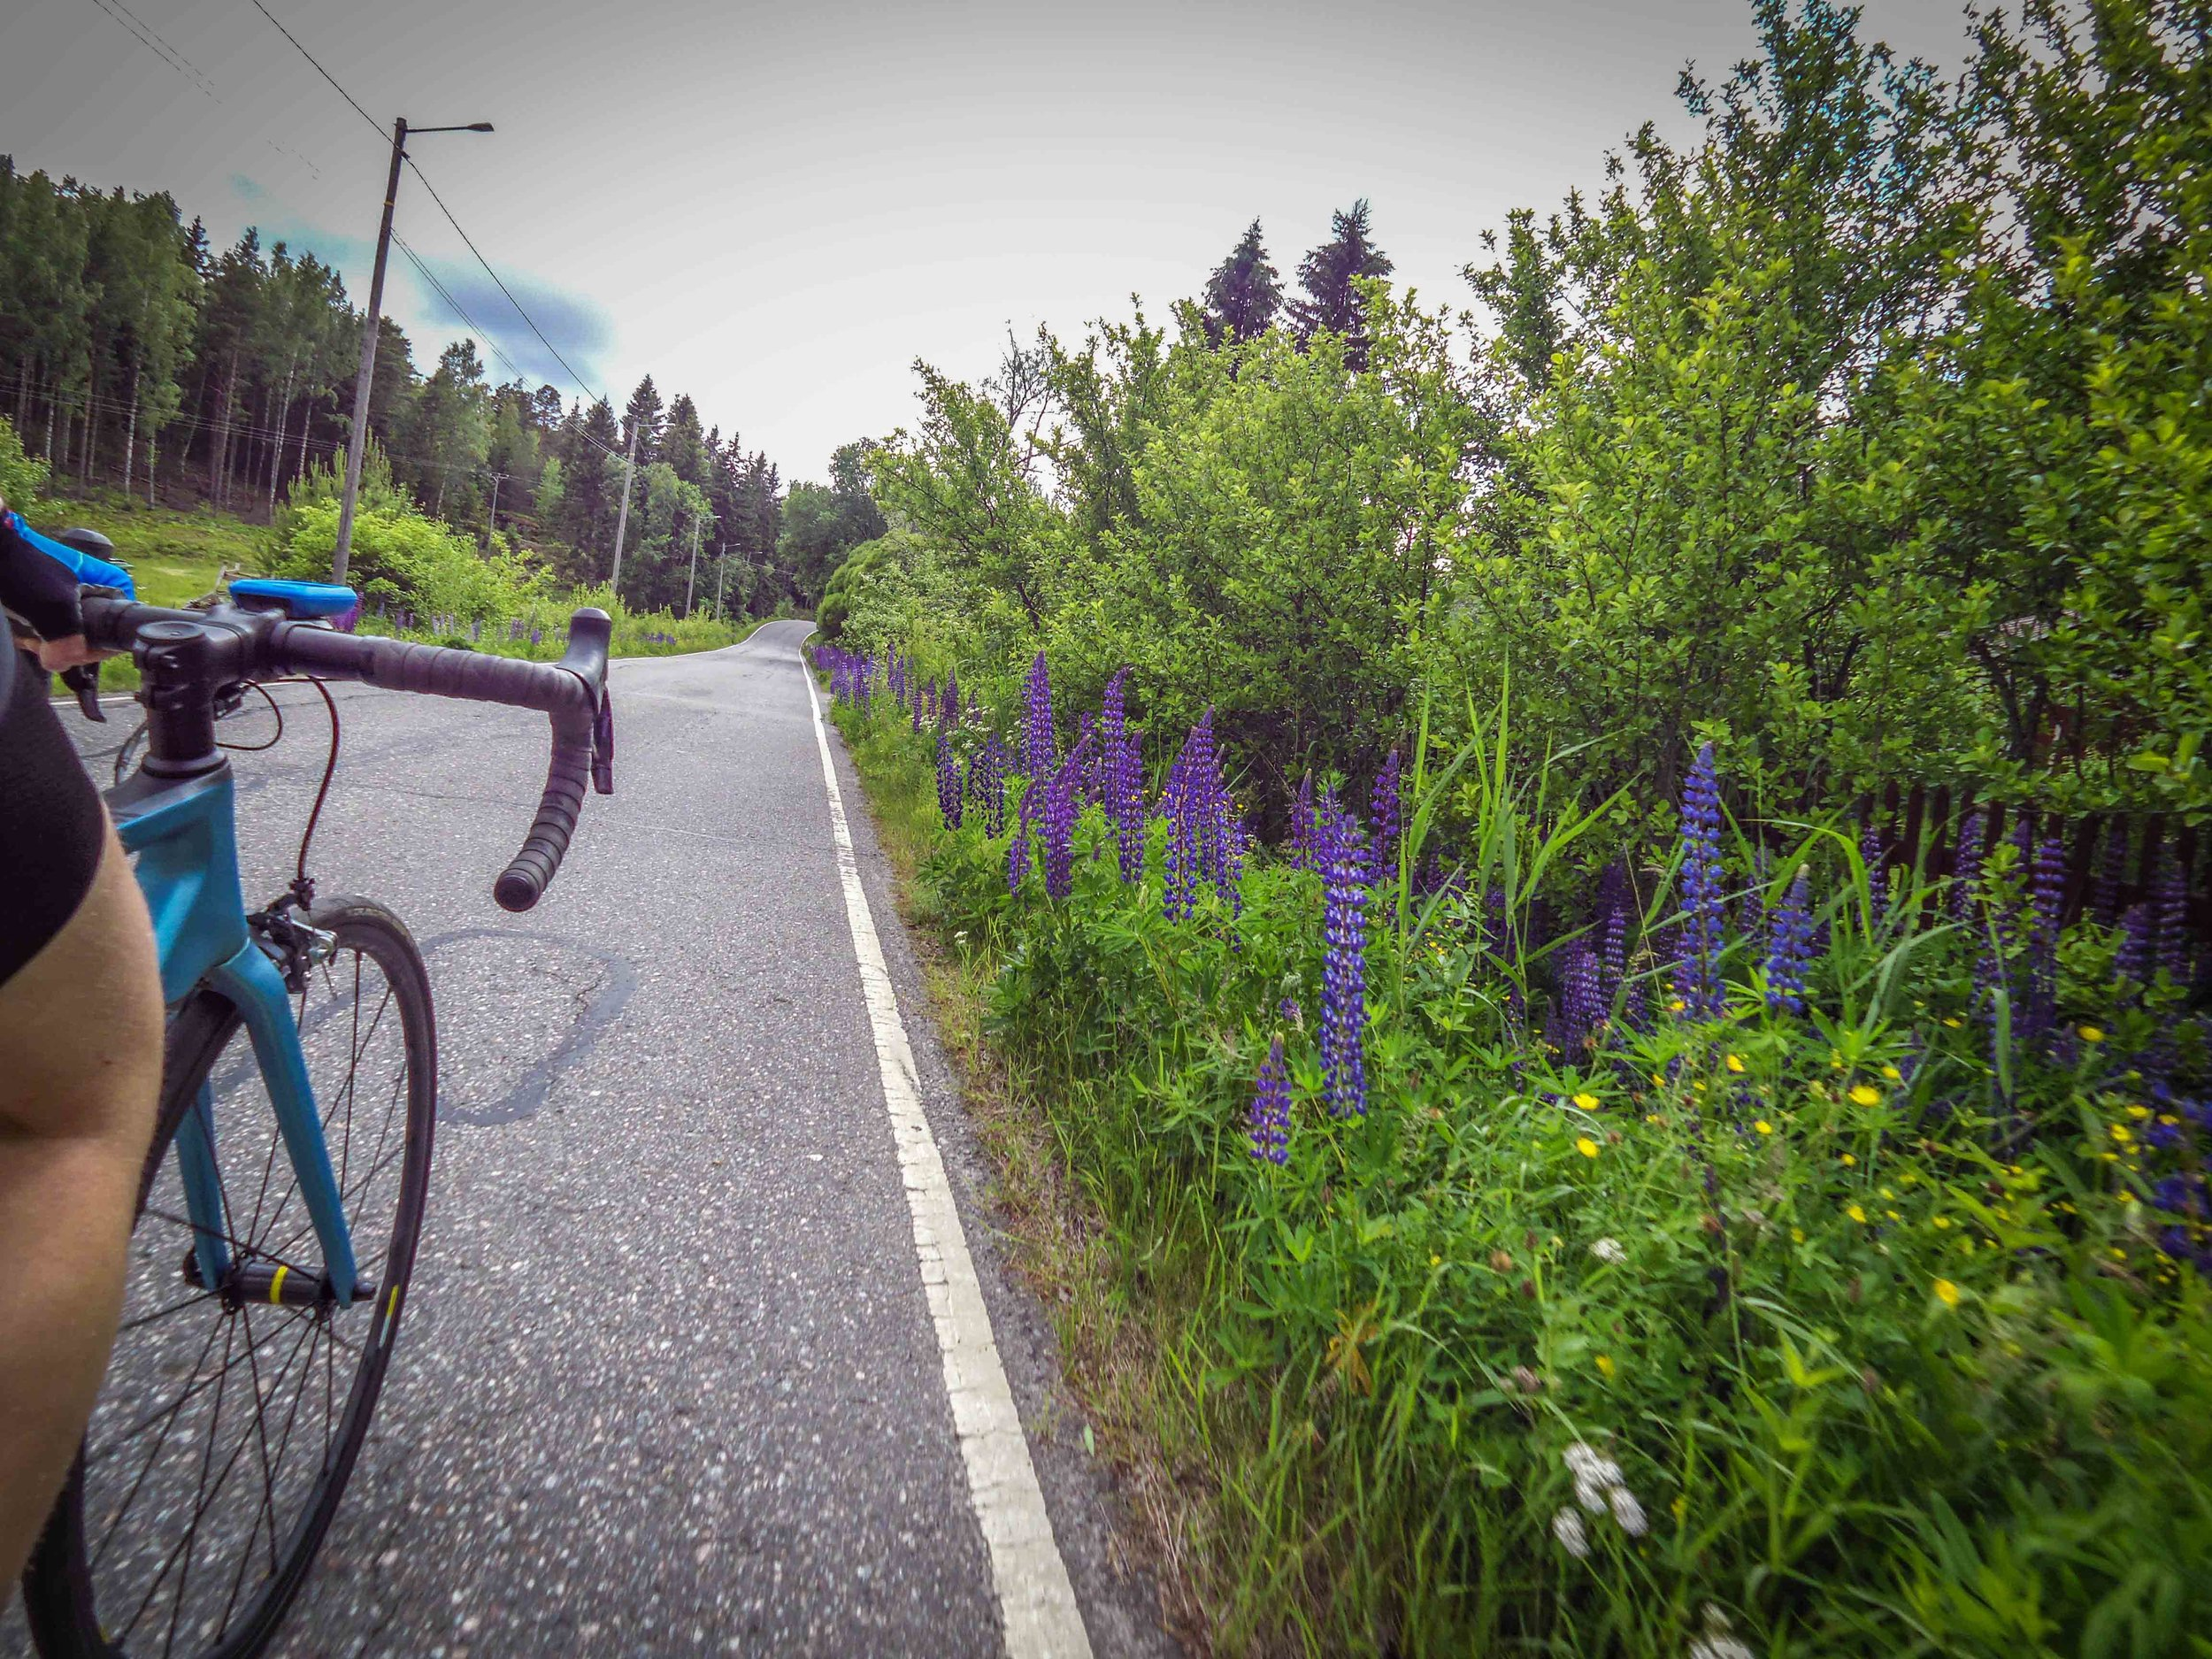 One of the most beautiful routes in Turku is the route around Kakskerta. Just before midsummer, the side of the road is filled with colorful lupines.